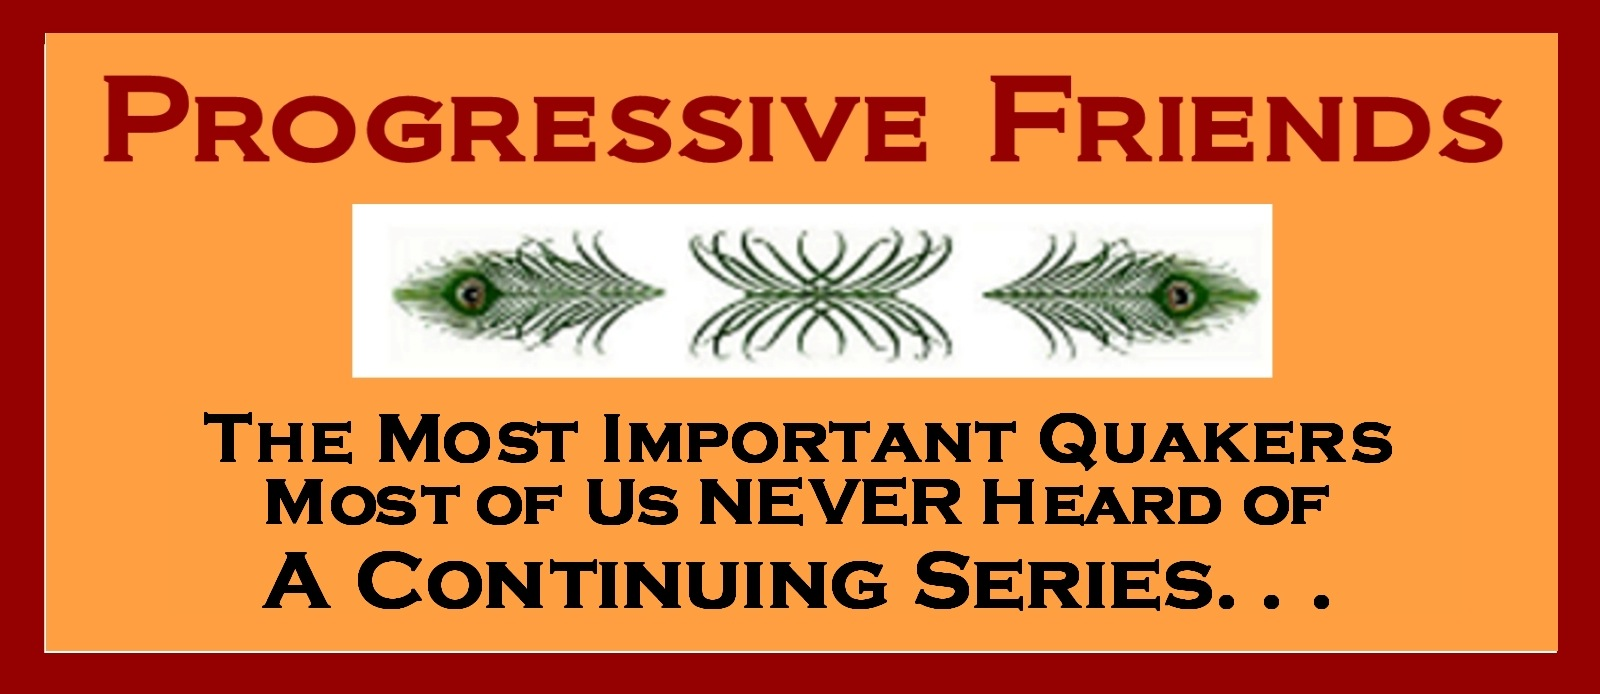 Progressive Friends - The Most Important Quakers Most Of Us Never Heard Of - A Continuing Series